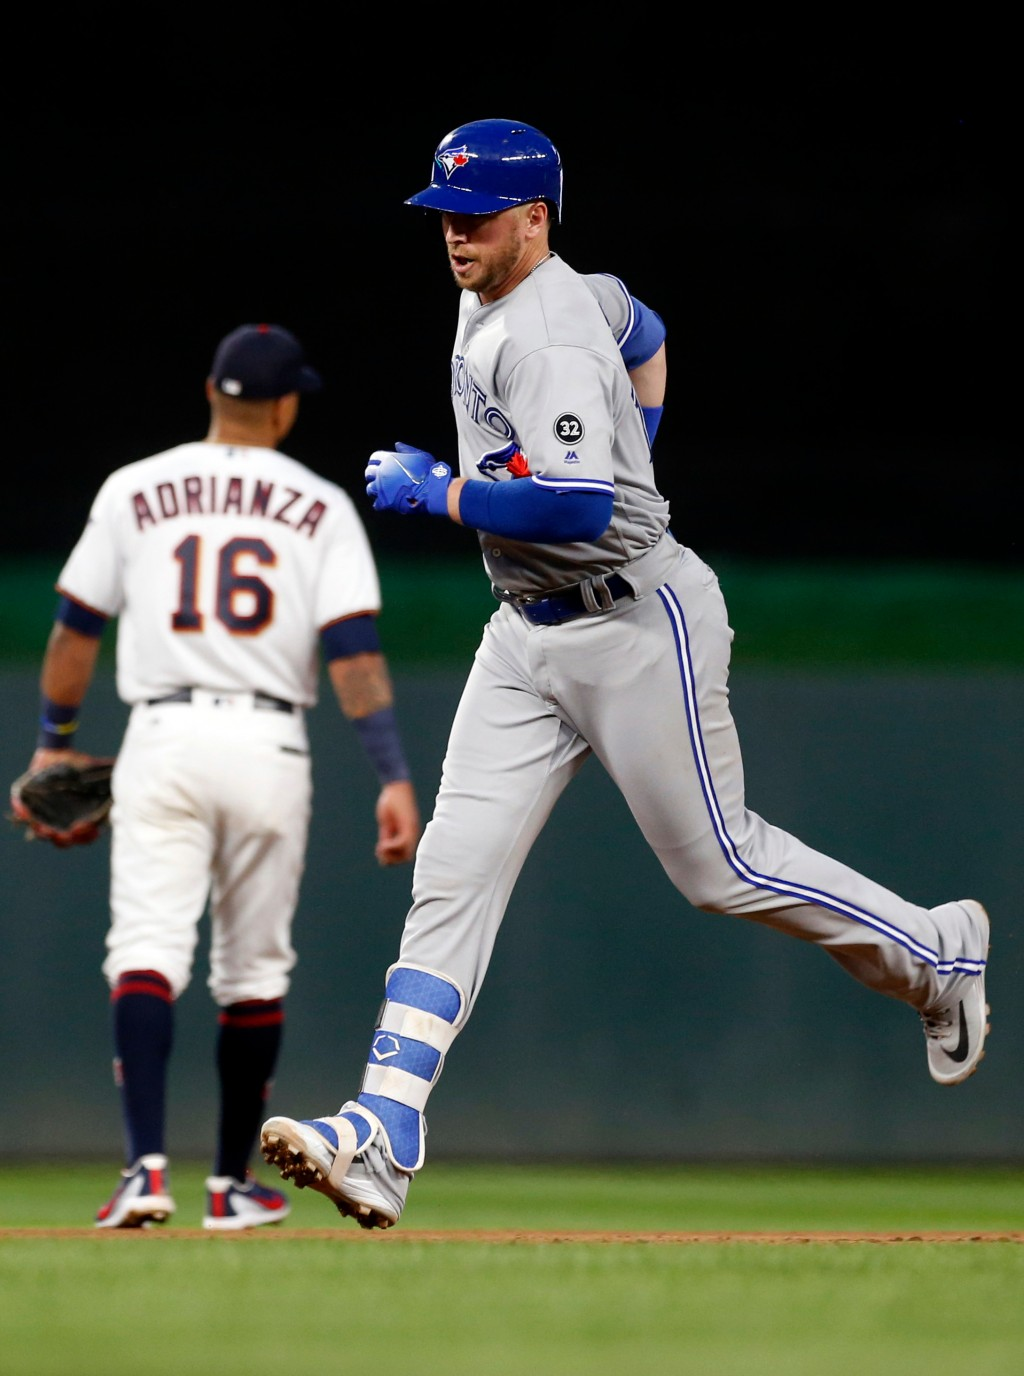 Toronto Blue Jays' Justin Smoak rounds the base path on a two-run home run off Minnesota Twins pitcher Lance Lynn in the fourth inning of a baseball g...